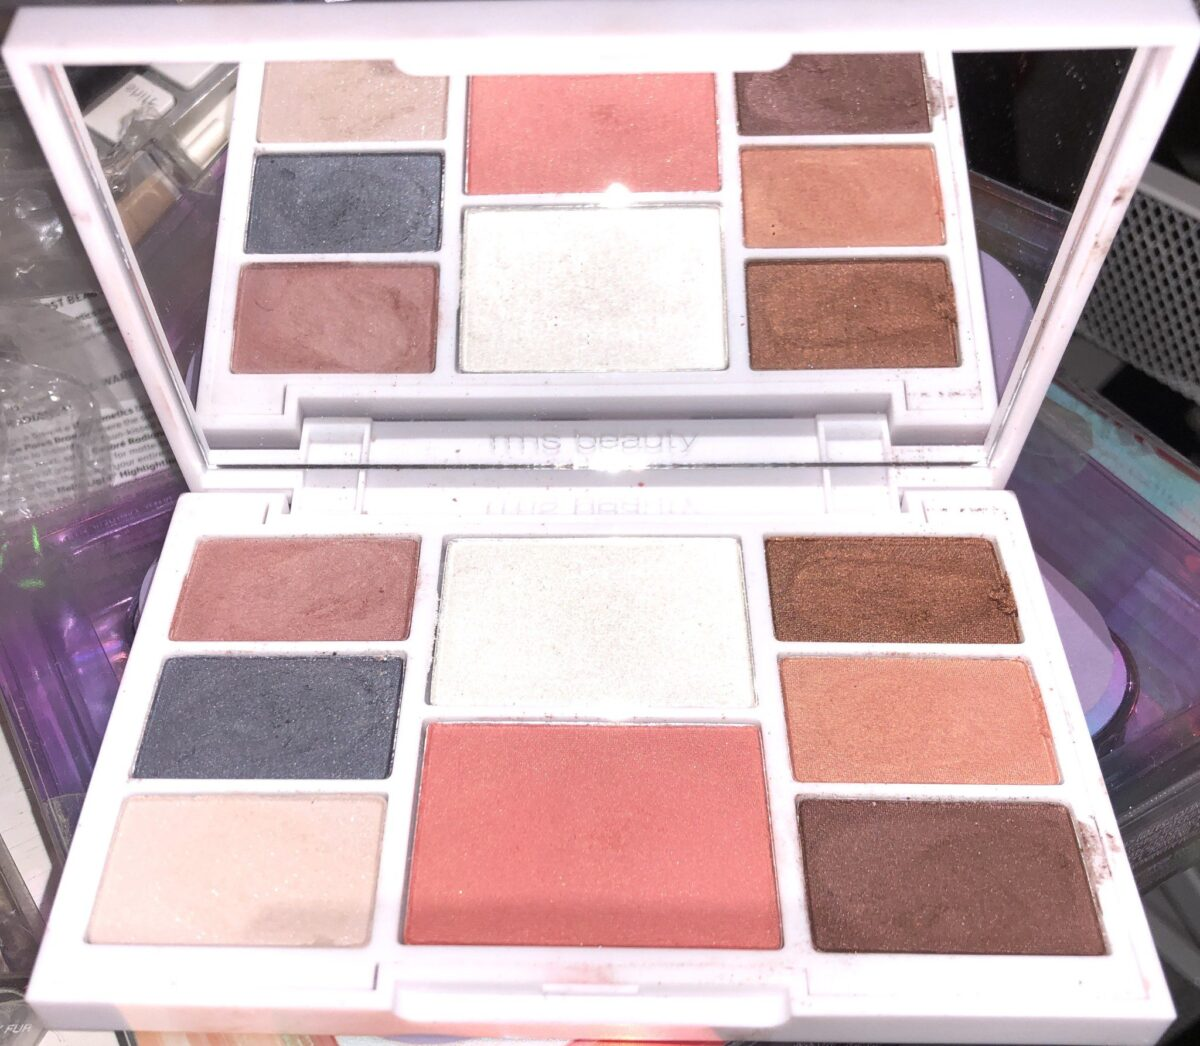 INSIDE THE RMS BEAUTY HIDDEN DESIRE PALETTE, A LARGE MIRROR, 6 EYESHADOWS, A HIGHLIGHTER AND A BLUSH